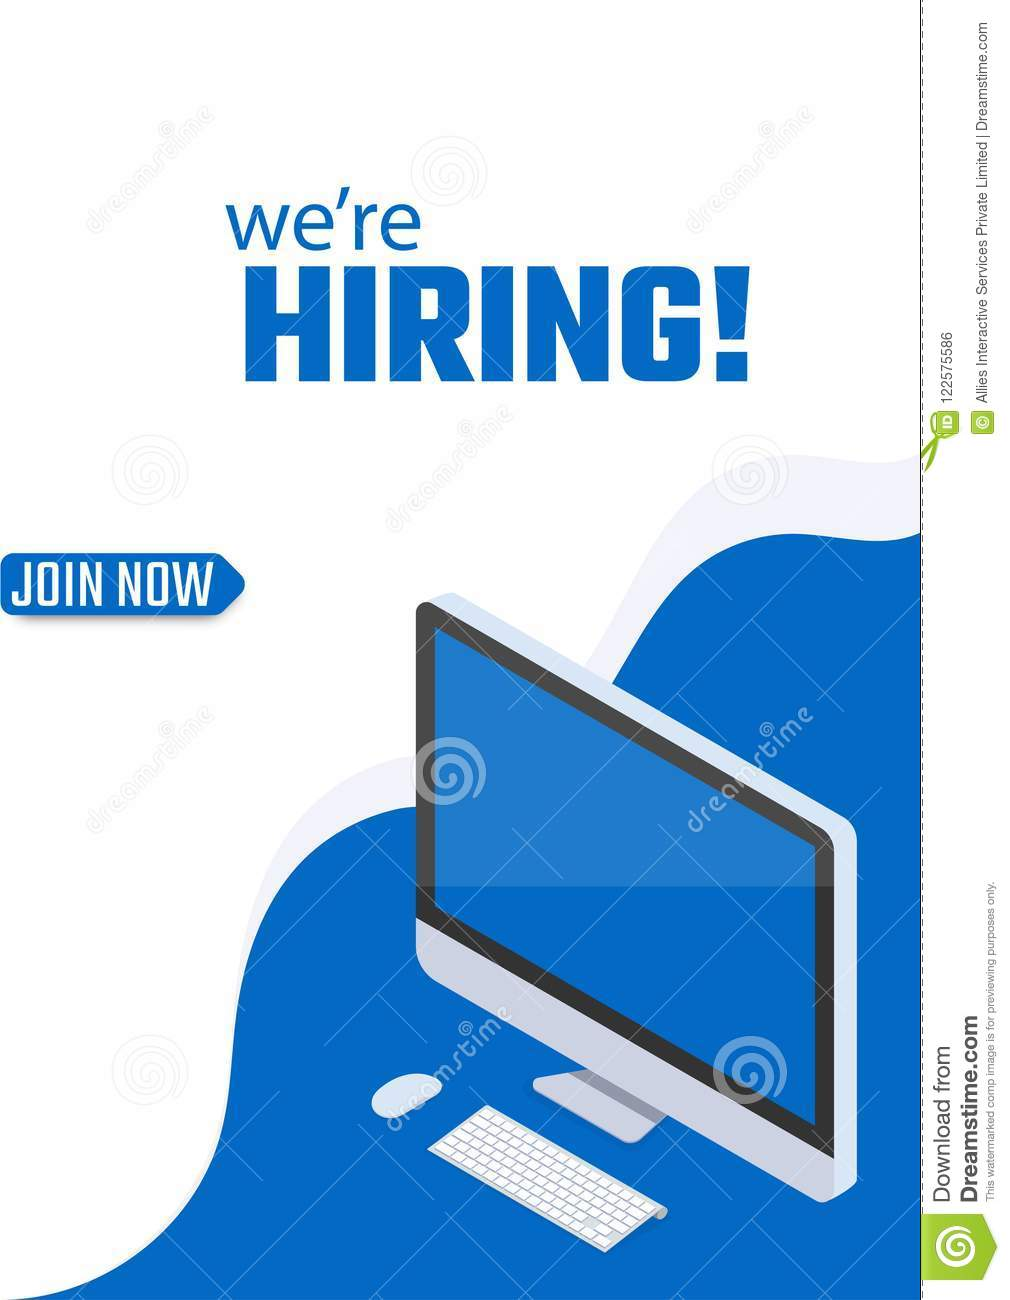 We Are Hiring, Join Now, Poster Or Template Design For Job ...